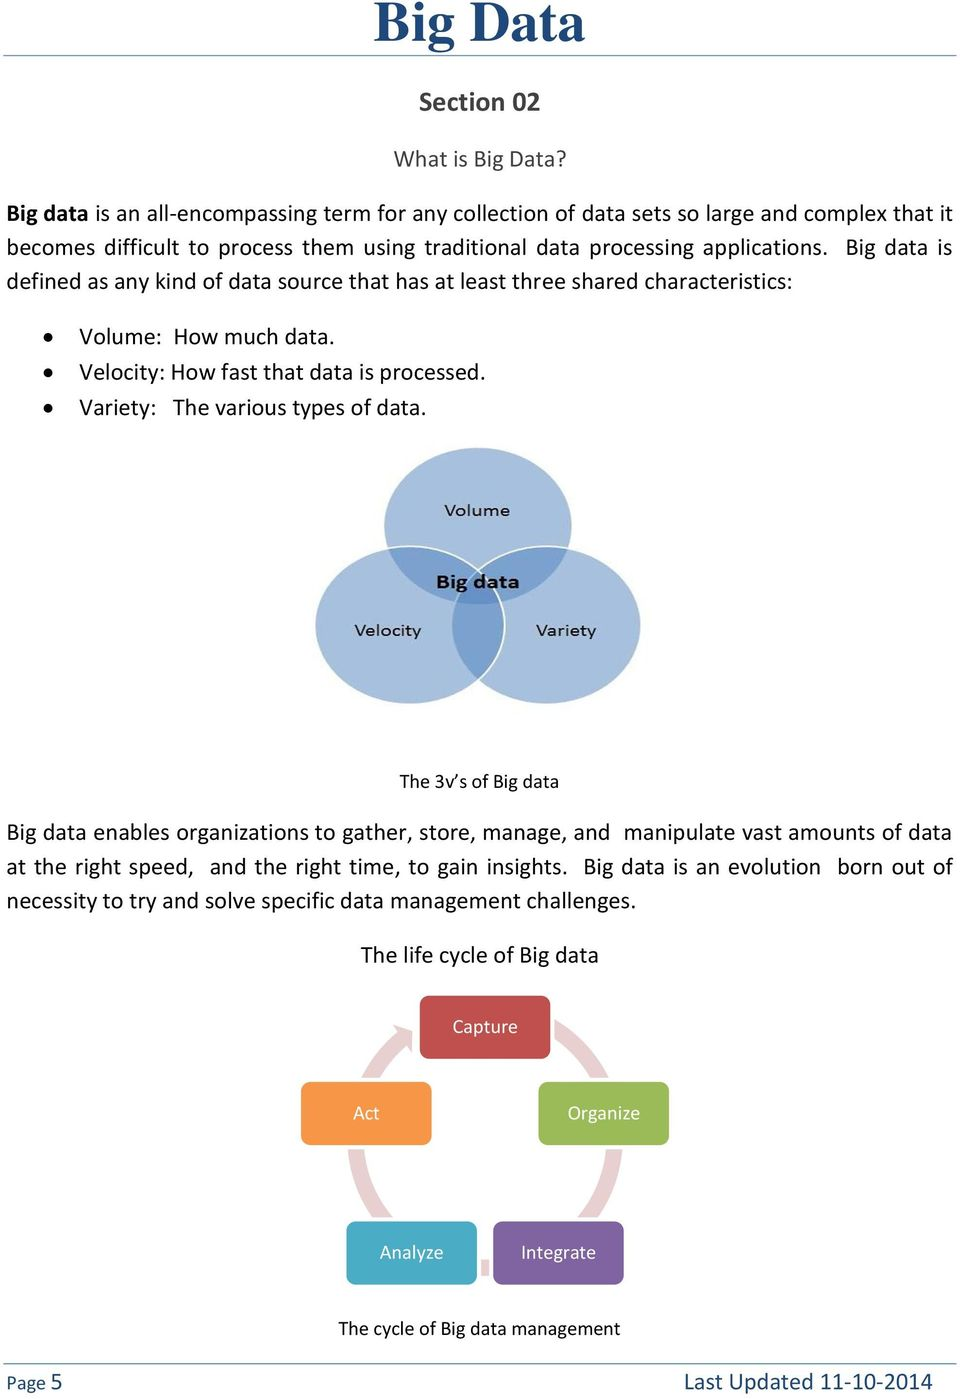 Big data is defined as any kind of data source that has at least three shared characteristics: Volume: How much data. Velocity: How fast that data is processed. Variety: The various types of data.